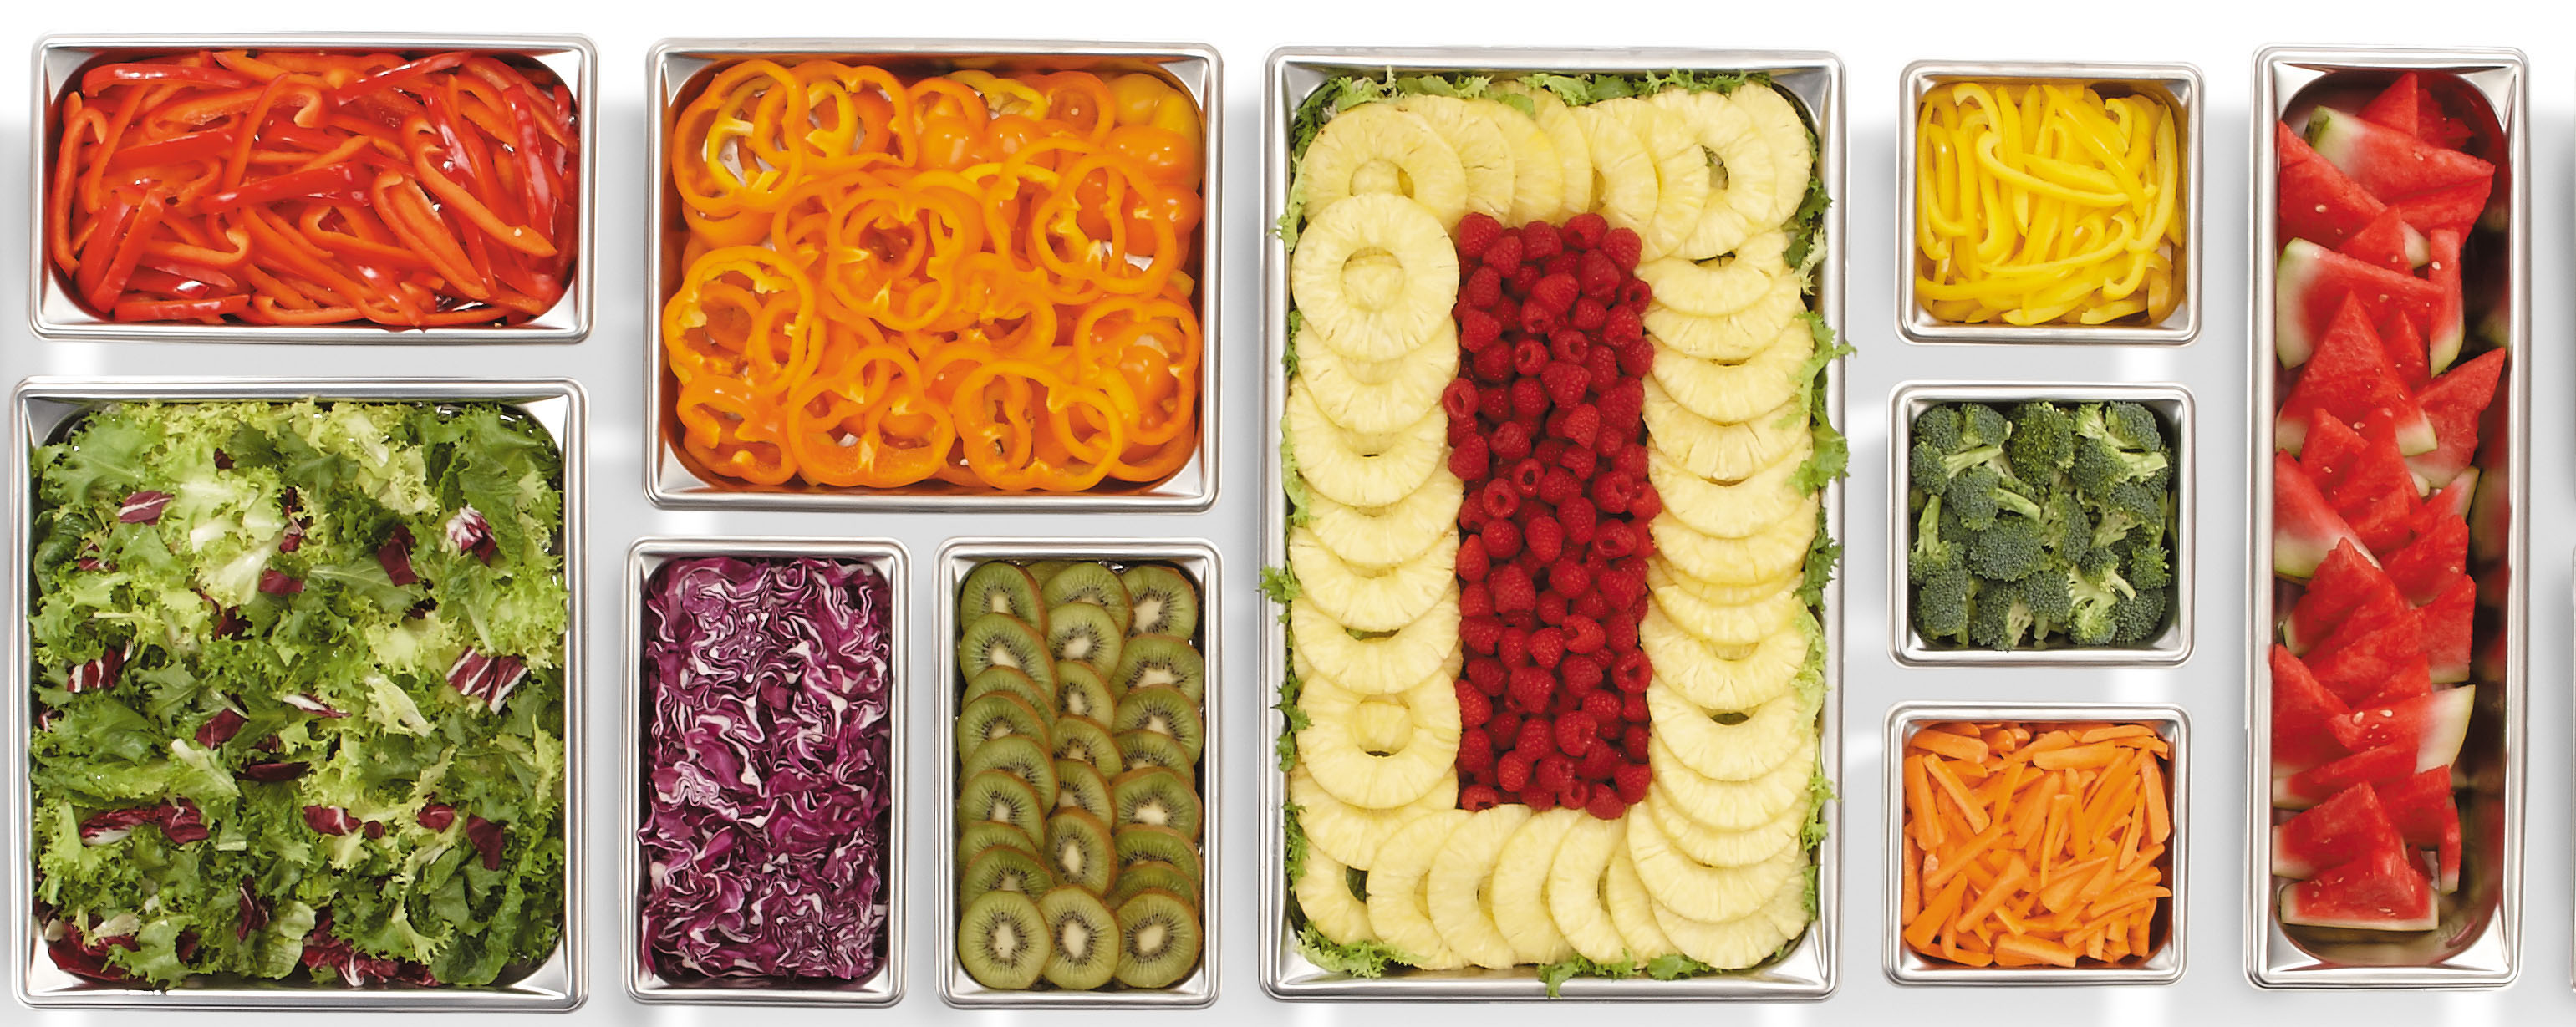 Food Pans Filled with Colourful Fruit & Vegetables